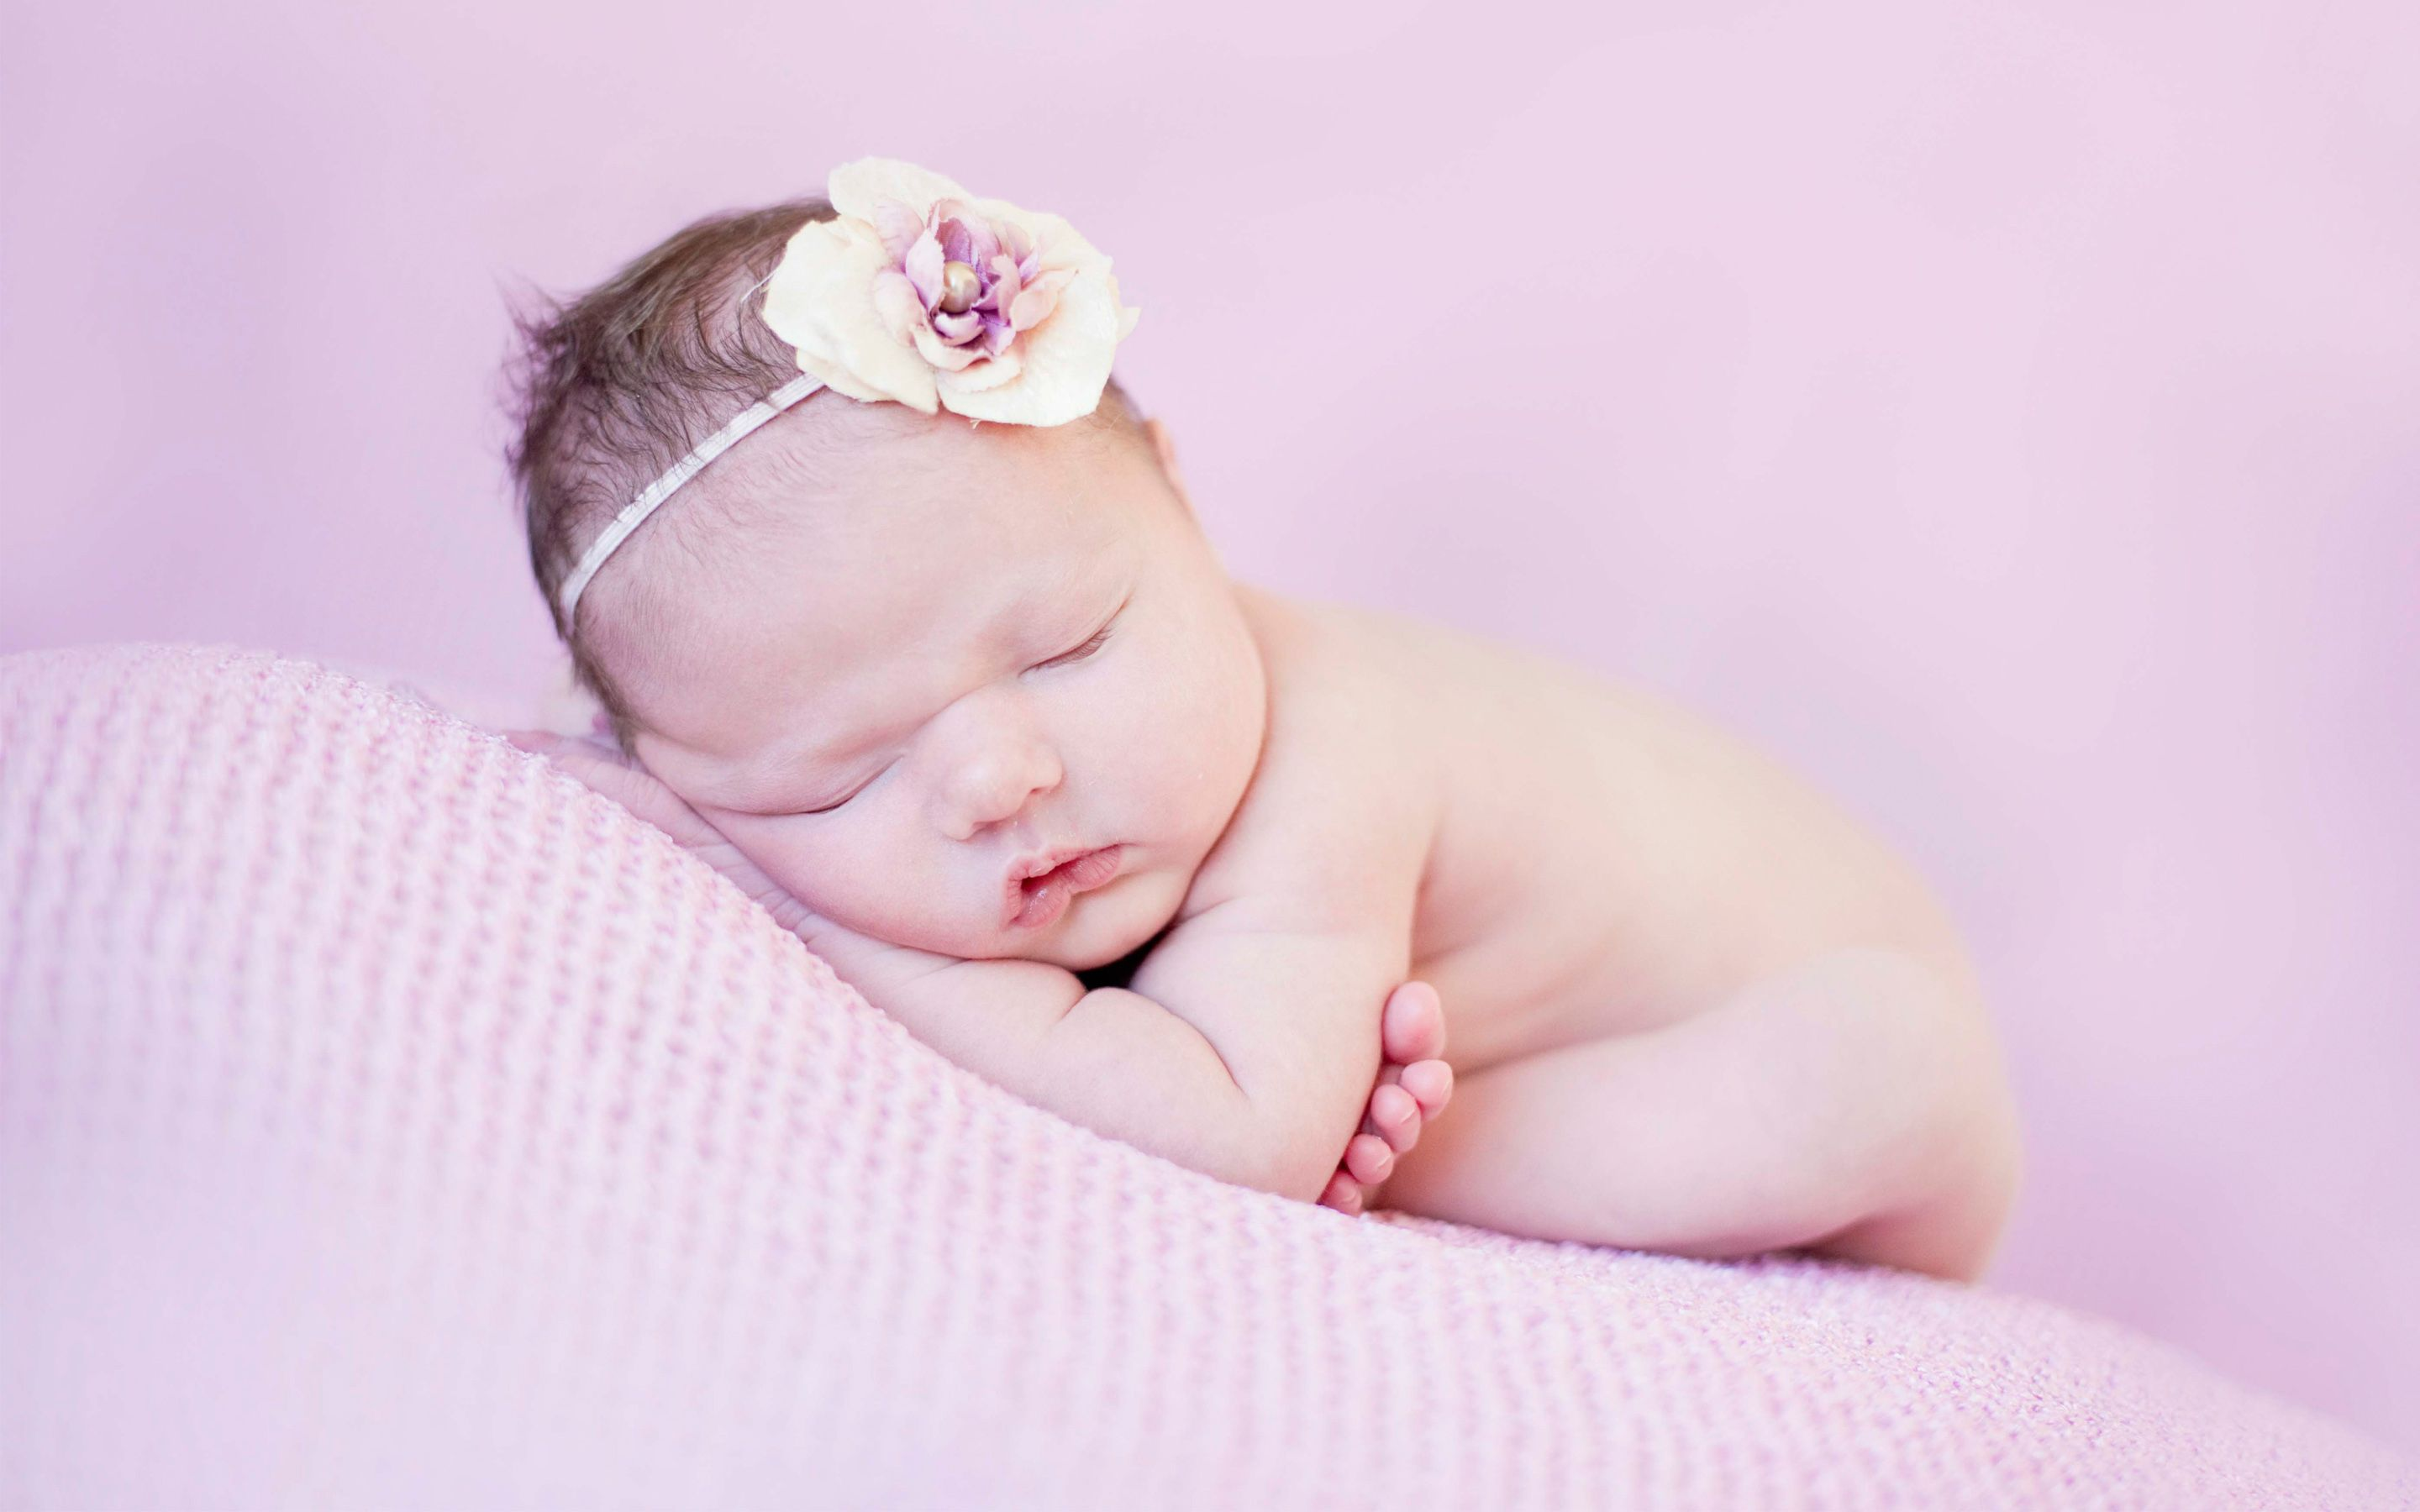 Good Night Baby Sleeping Lovely Wishes Wallpapers Hd Wallpapers